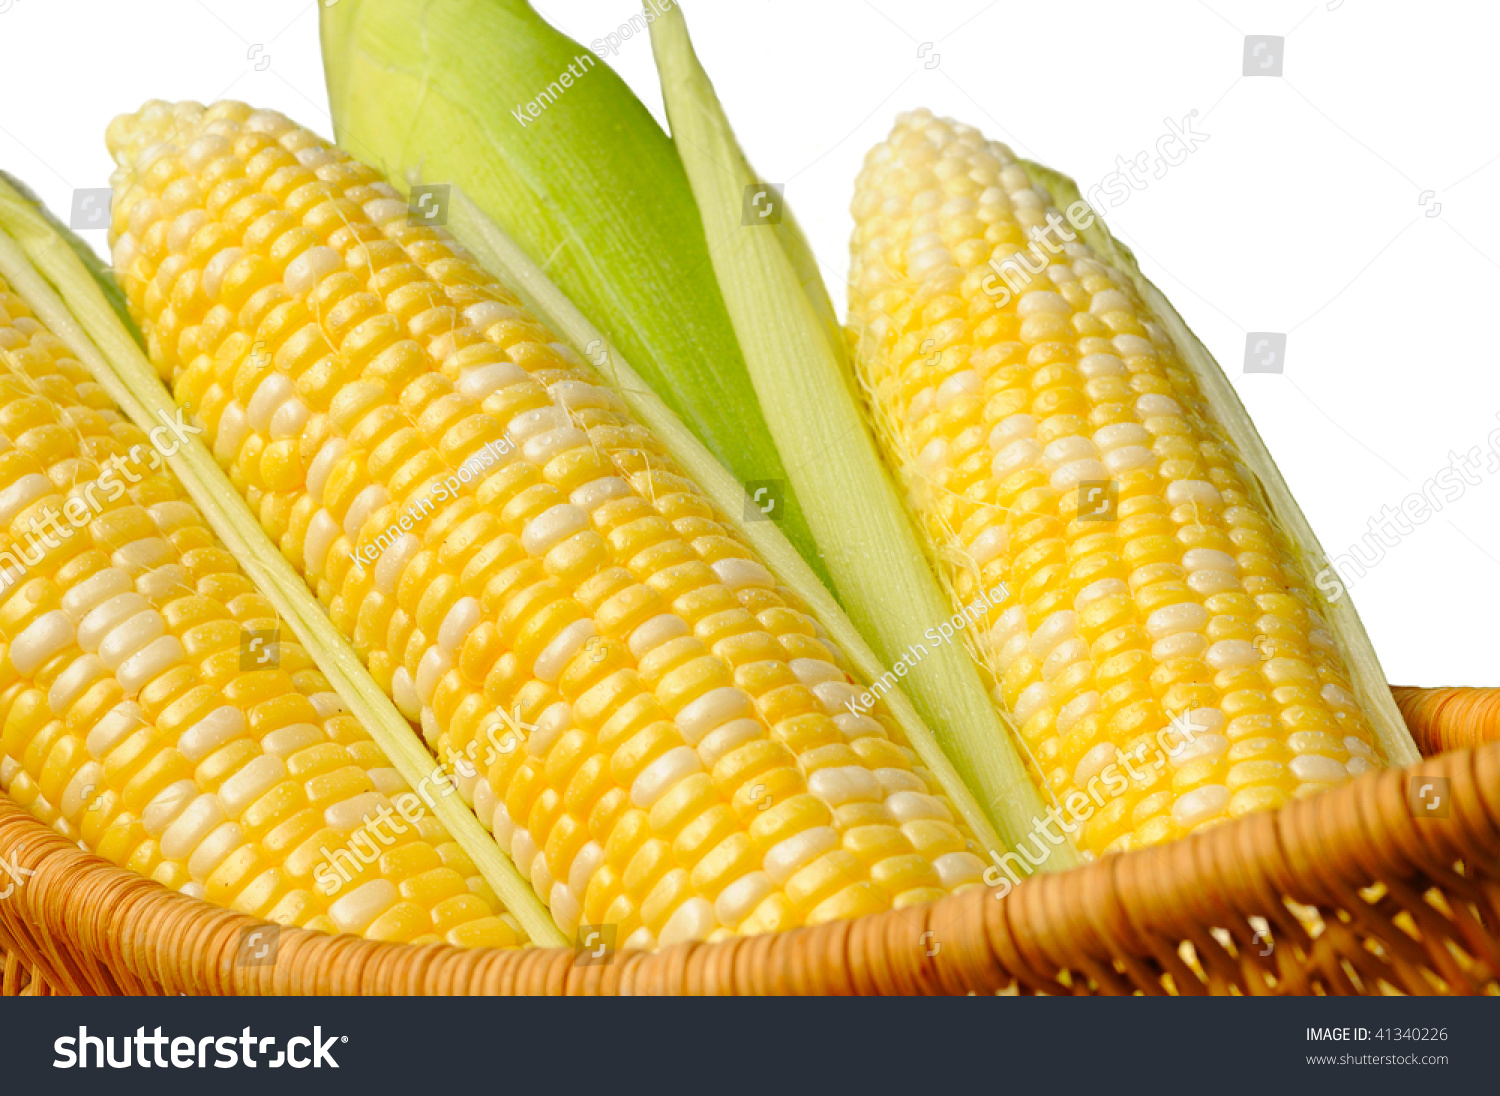 A Basket Of Sweet Corn, Three Ears Partially Husked, Isolated On White Stock Photo 41340226 : Shutterstock